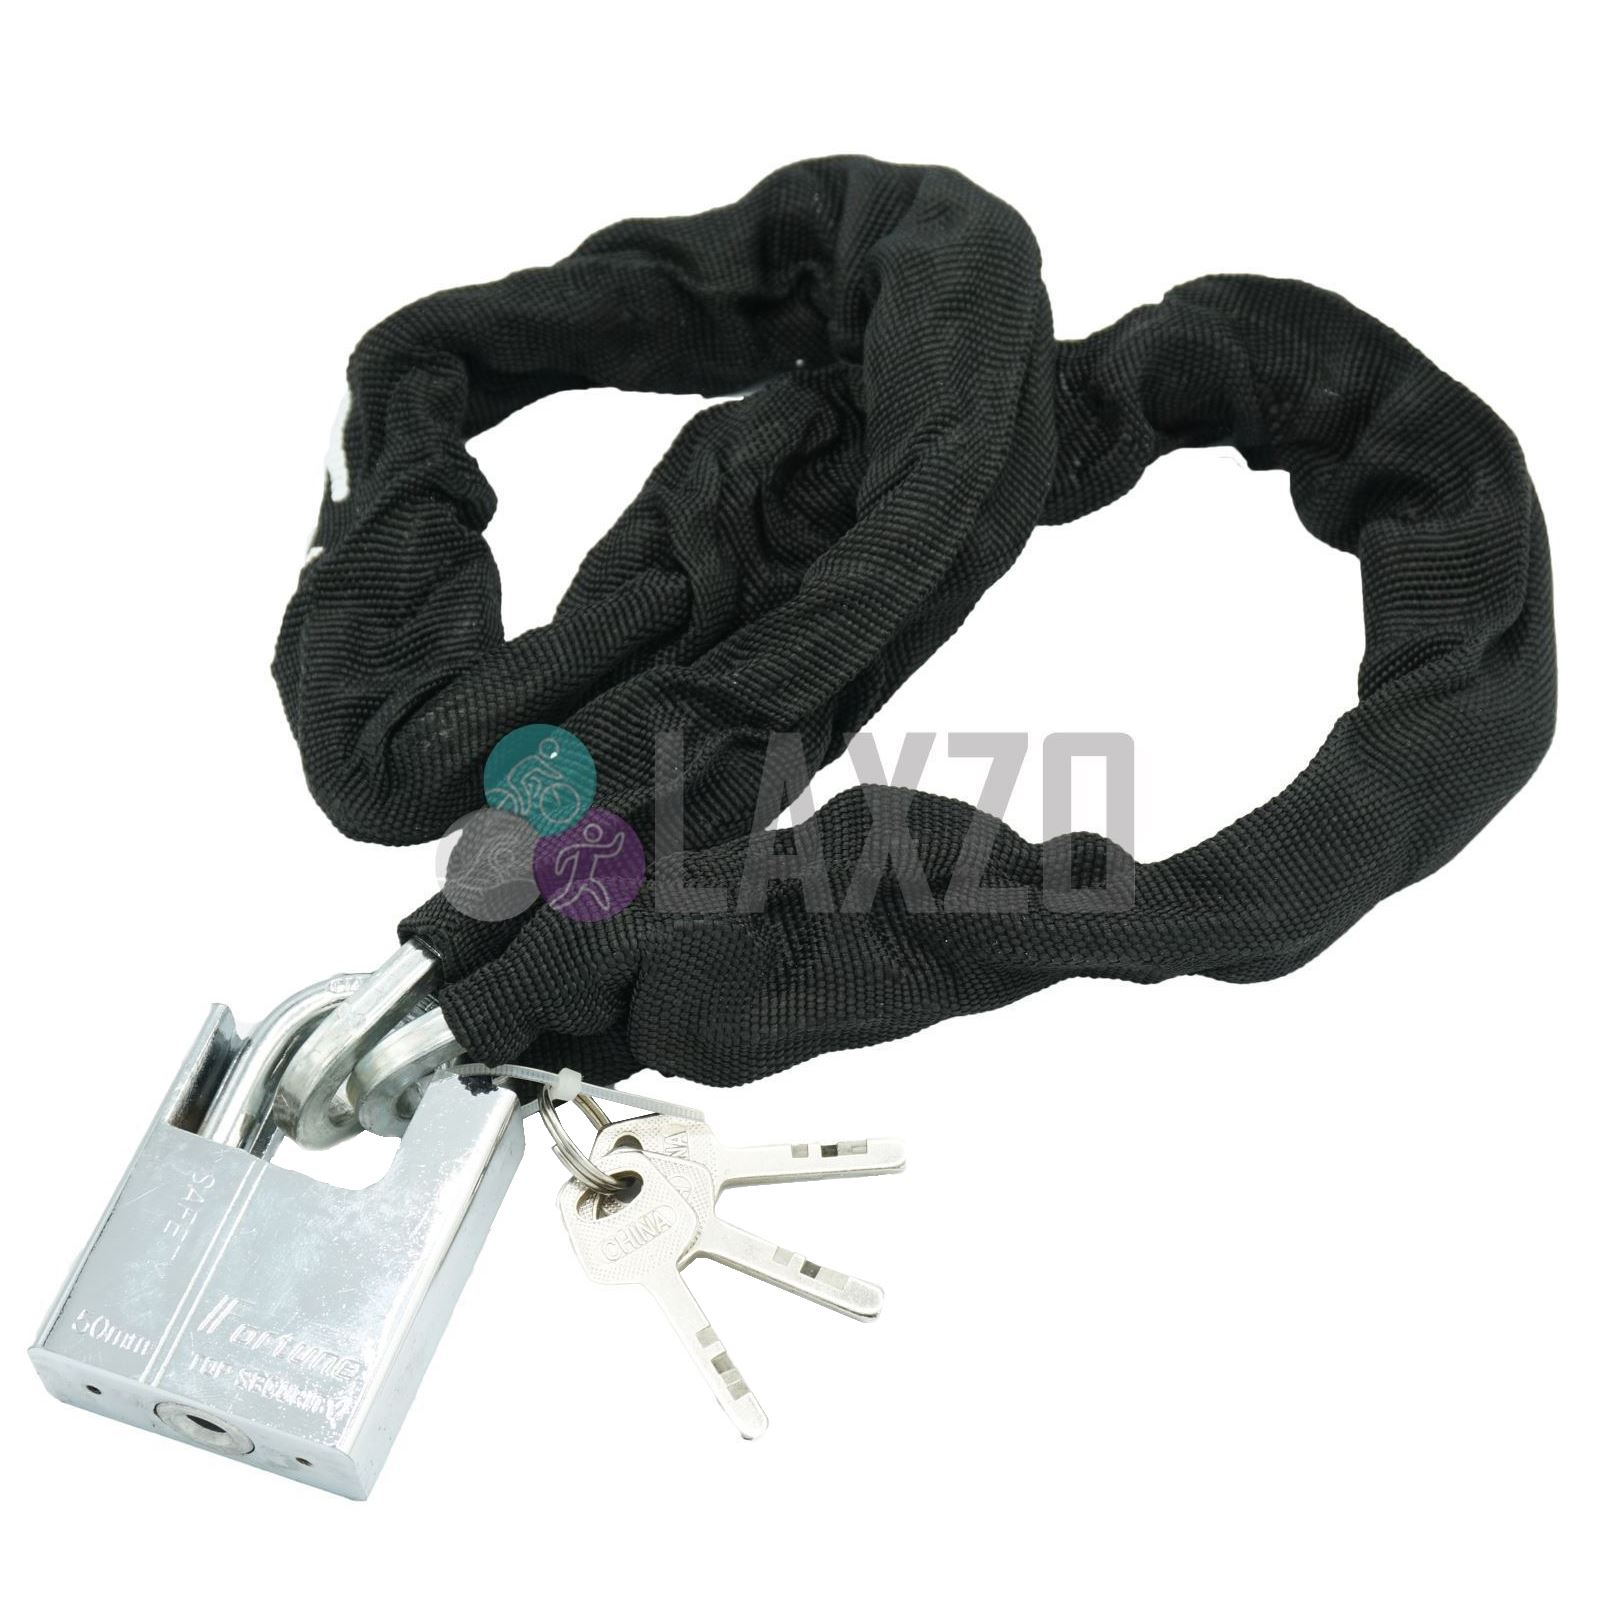 Heavy Duty Motorcycle Scooter Bike Cycle Motor Bicycle Chain Padlock with Keys